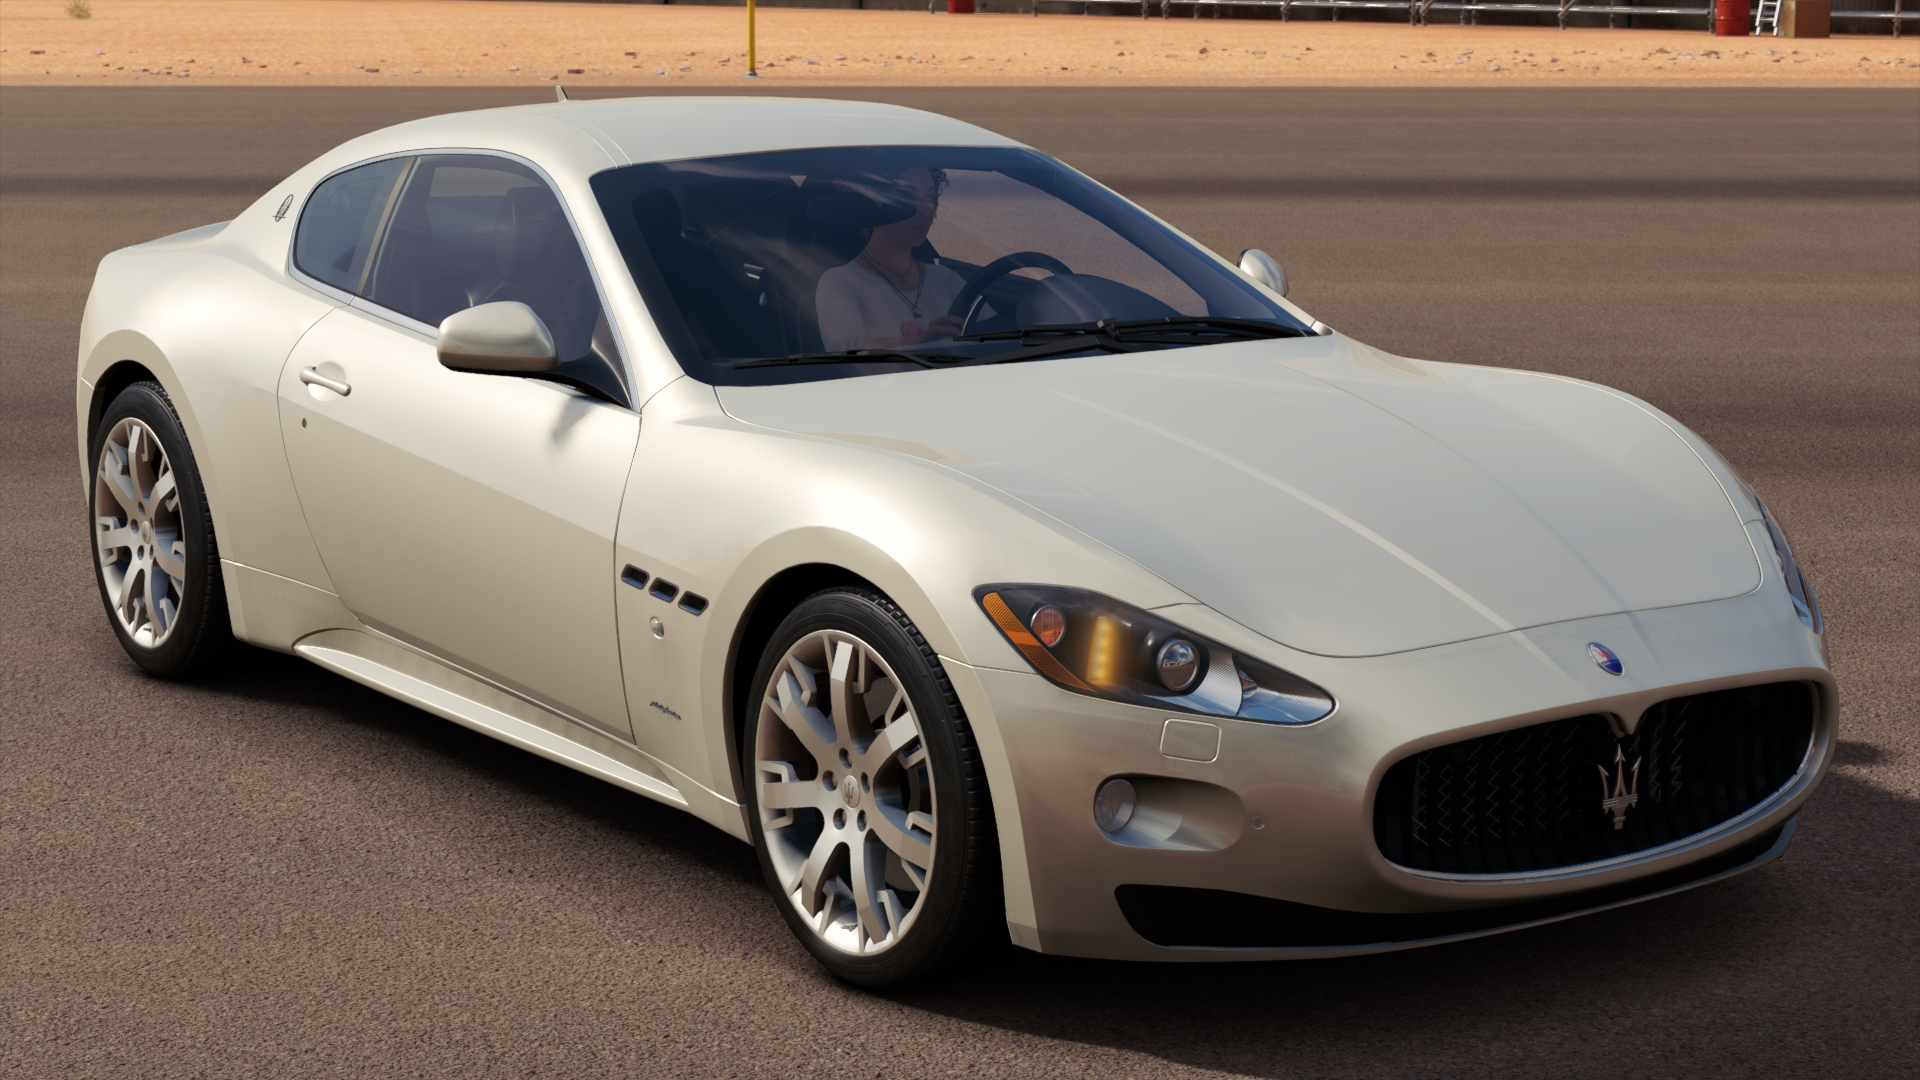 https://vignette.wikia.nocookie.net/forzamotorsport/images/0/06/FH3_Maserati_GranTurismo_S_Front.jpg/revision/latest?cb=20171006160210